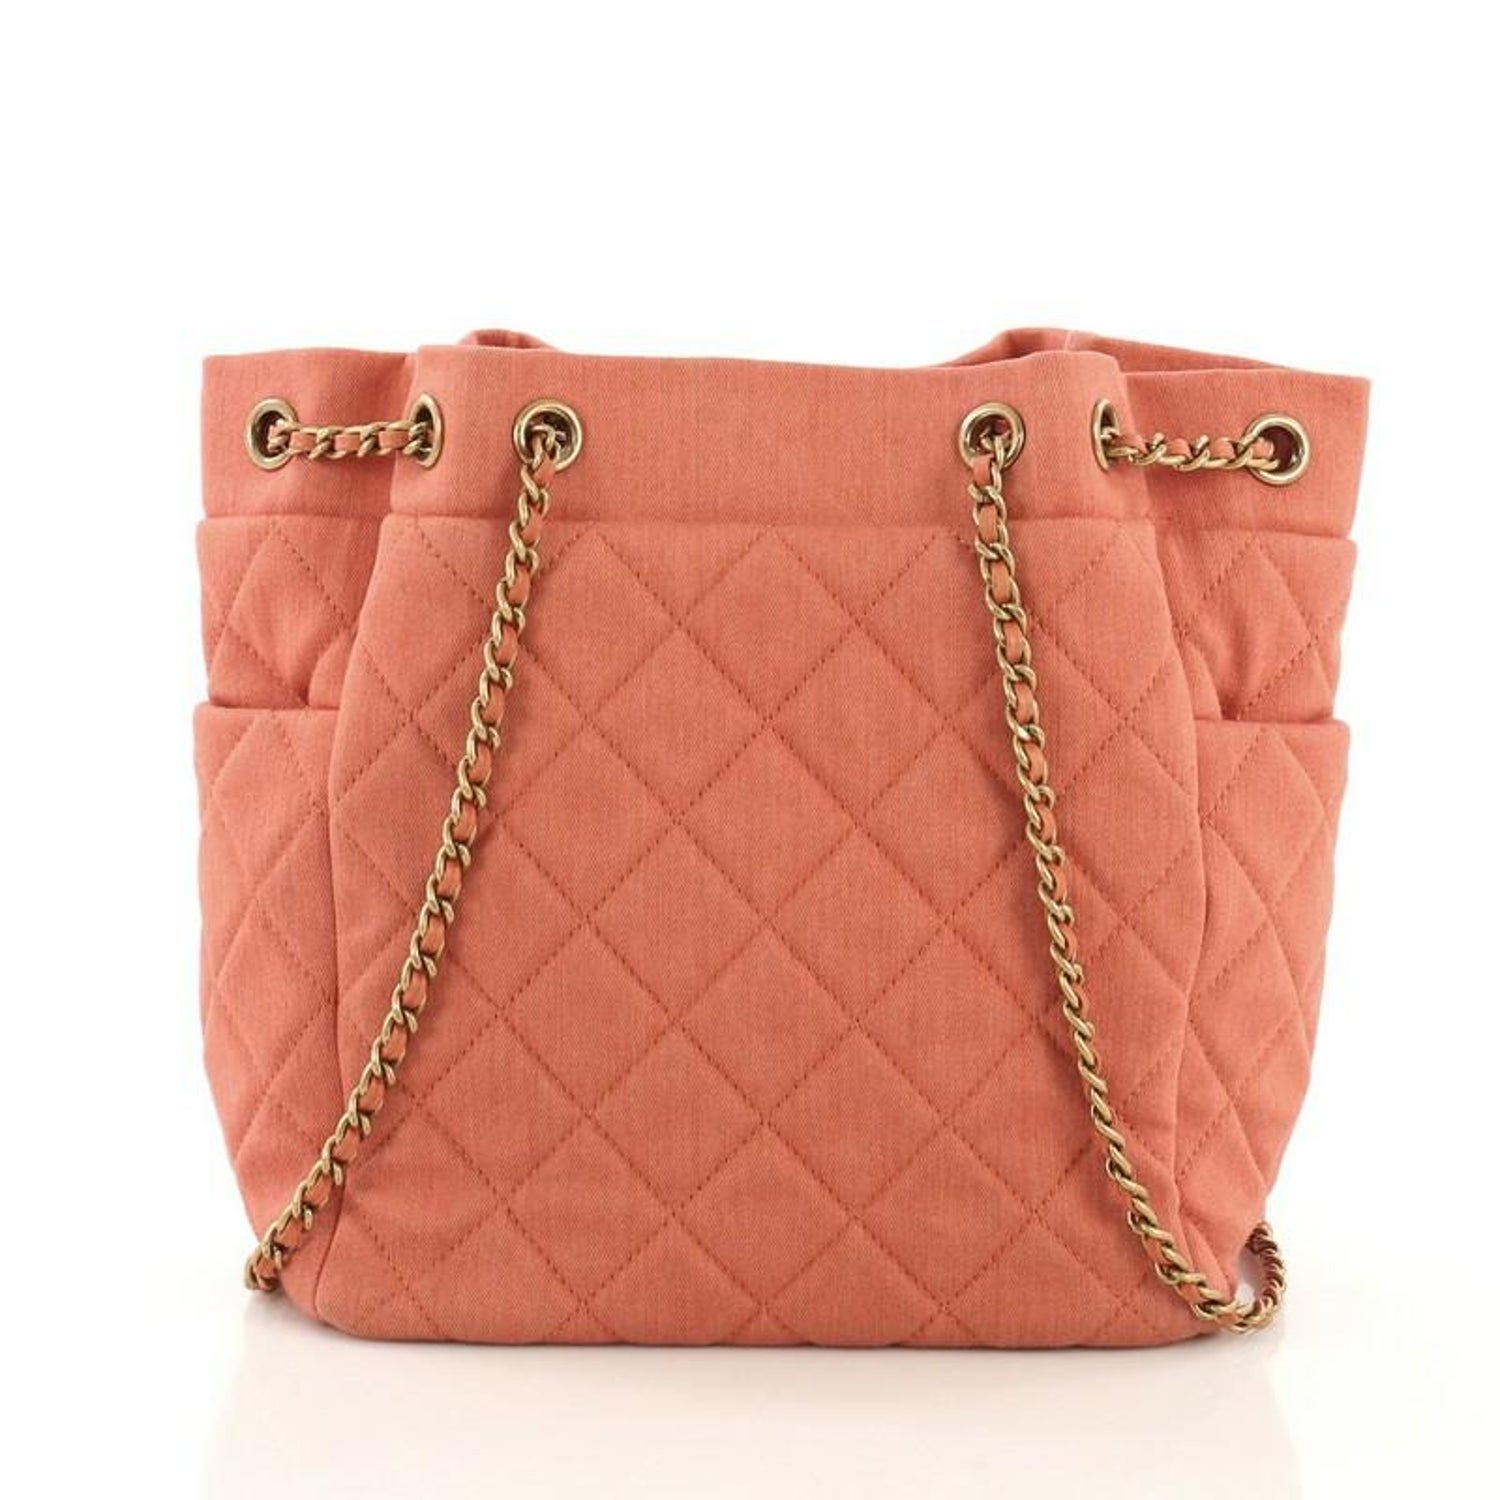 761f826063e2 Chanel Urban Spirit Drawstring Bag Quilted Denim Small For Sale at 1stdibs